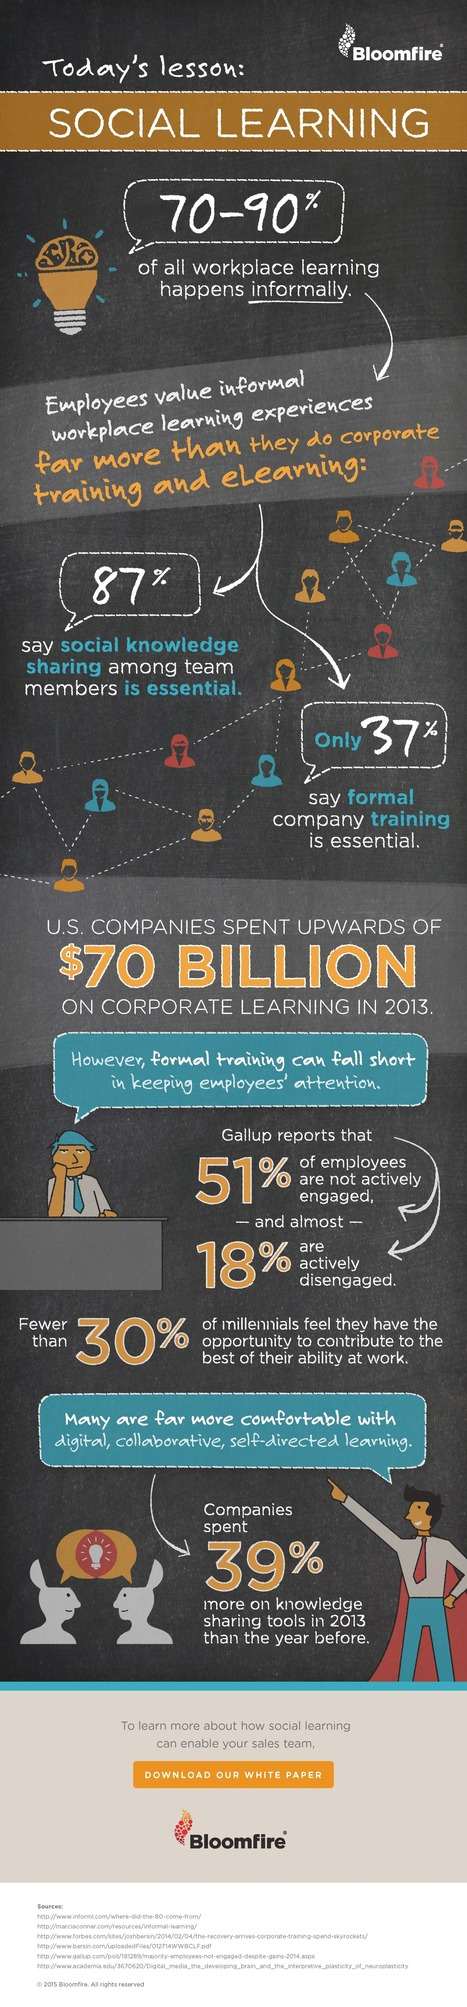 [Infographic] The importance of Social Learning for companies | Edumorfosis.it | Scoop.it